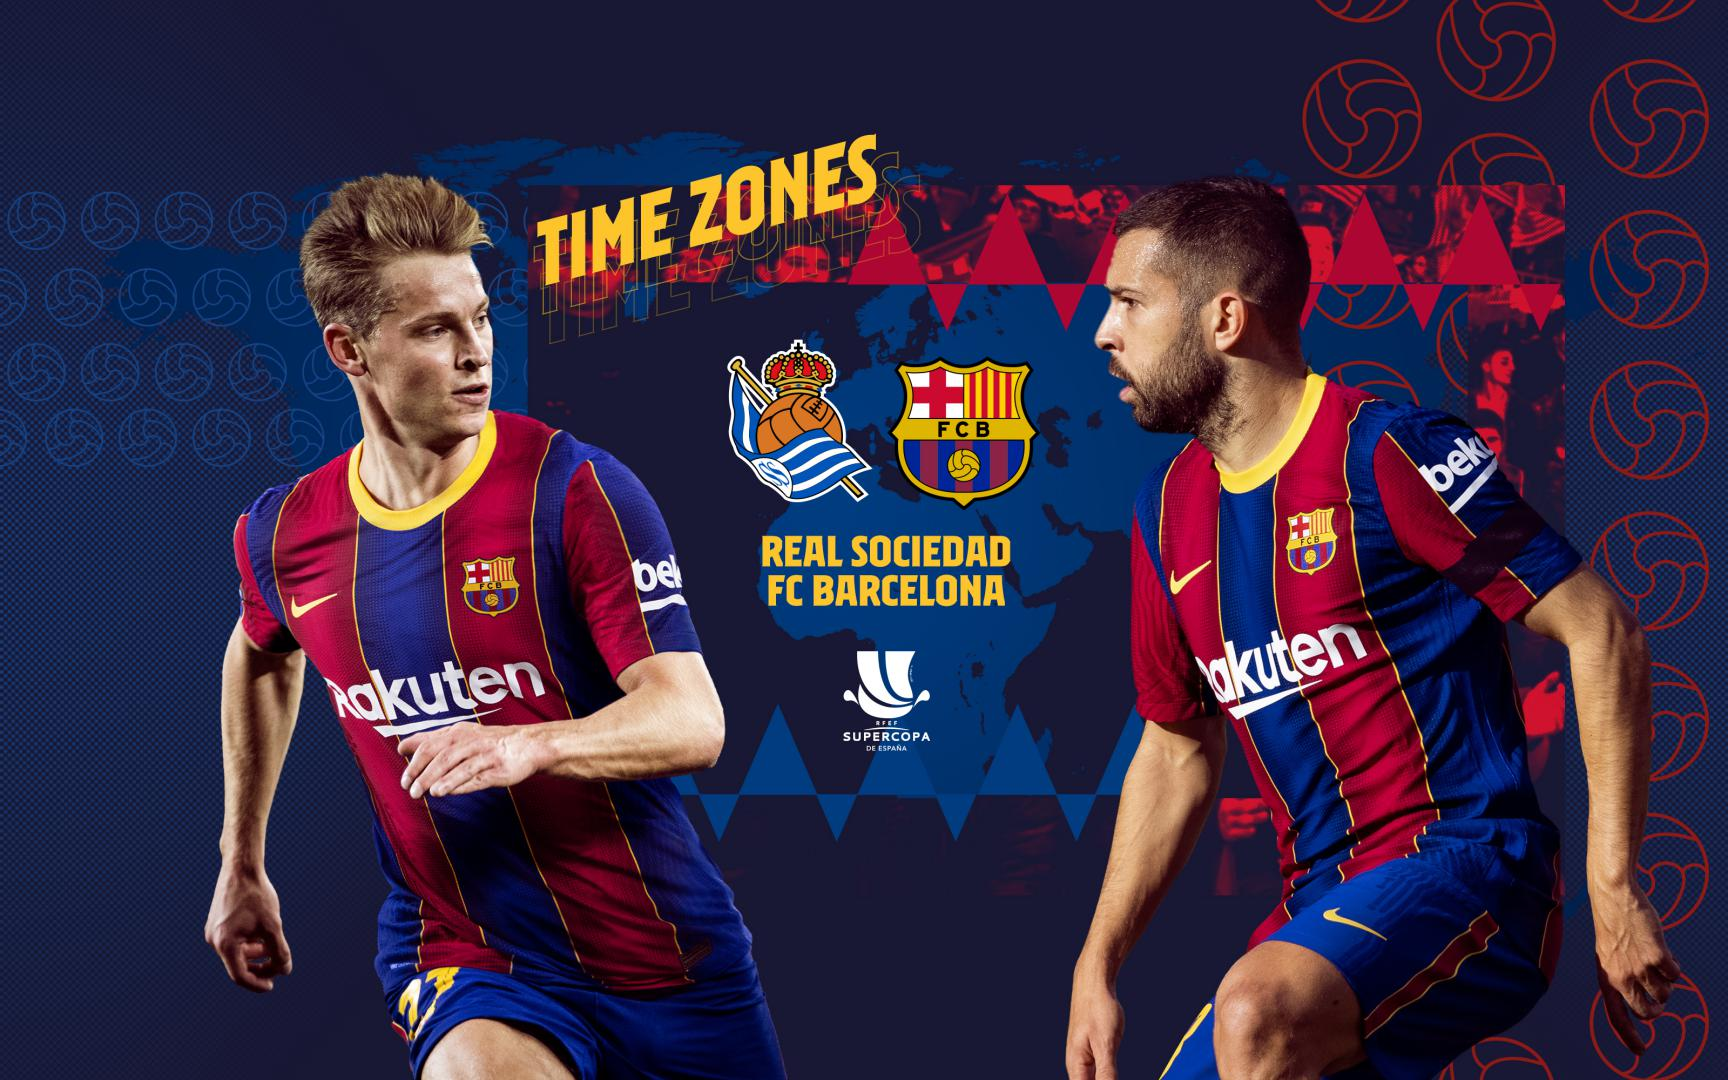 When to watch Real Sociedad v FC Barcelona